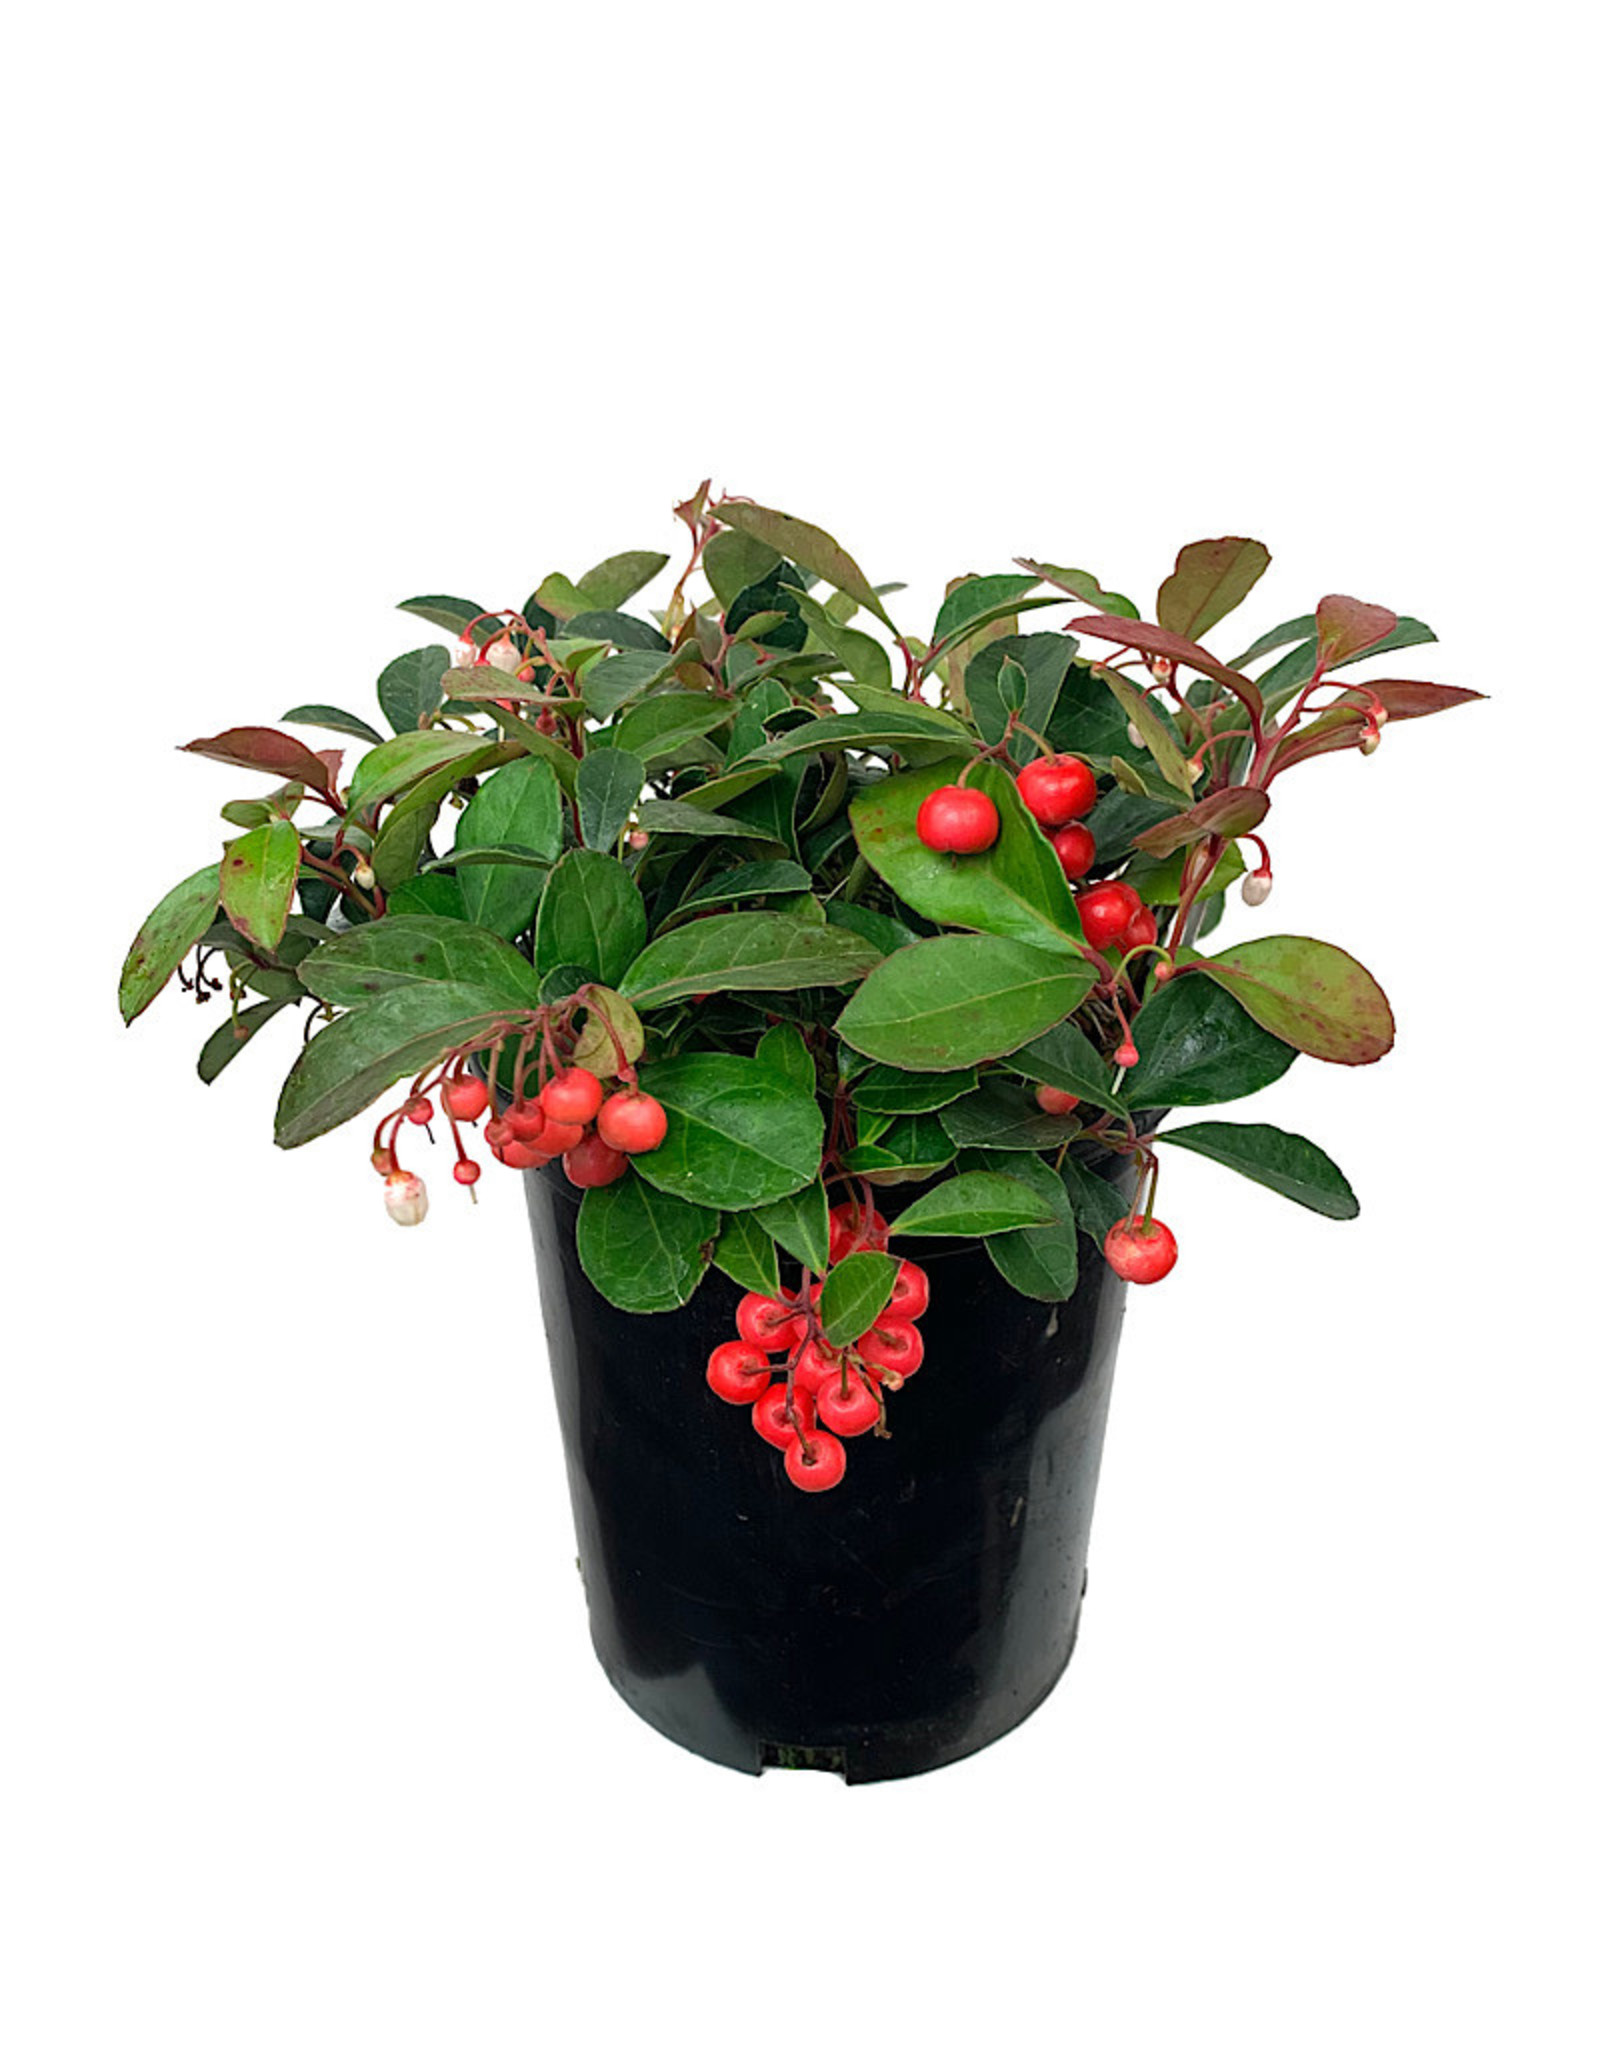 Gaultheria procumbens 'Cherry Berries' 1 Gallon